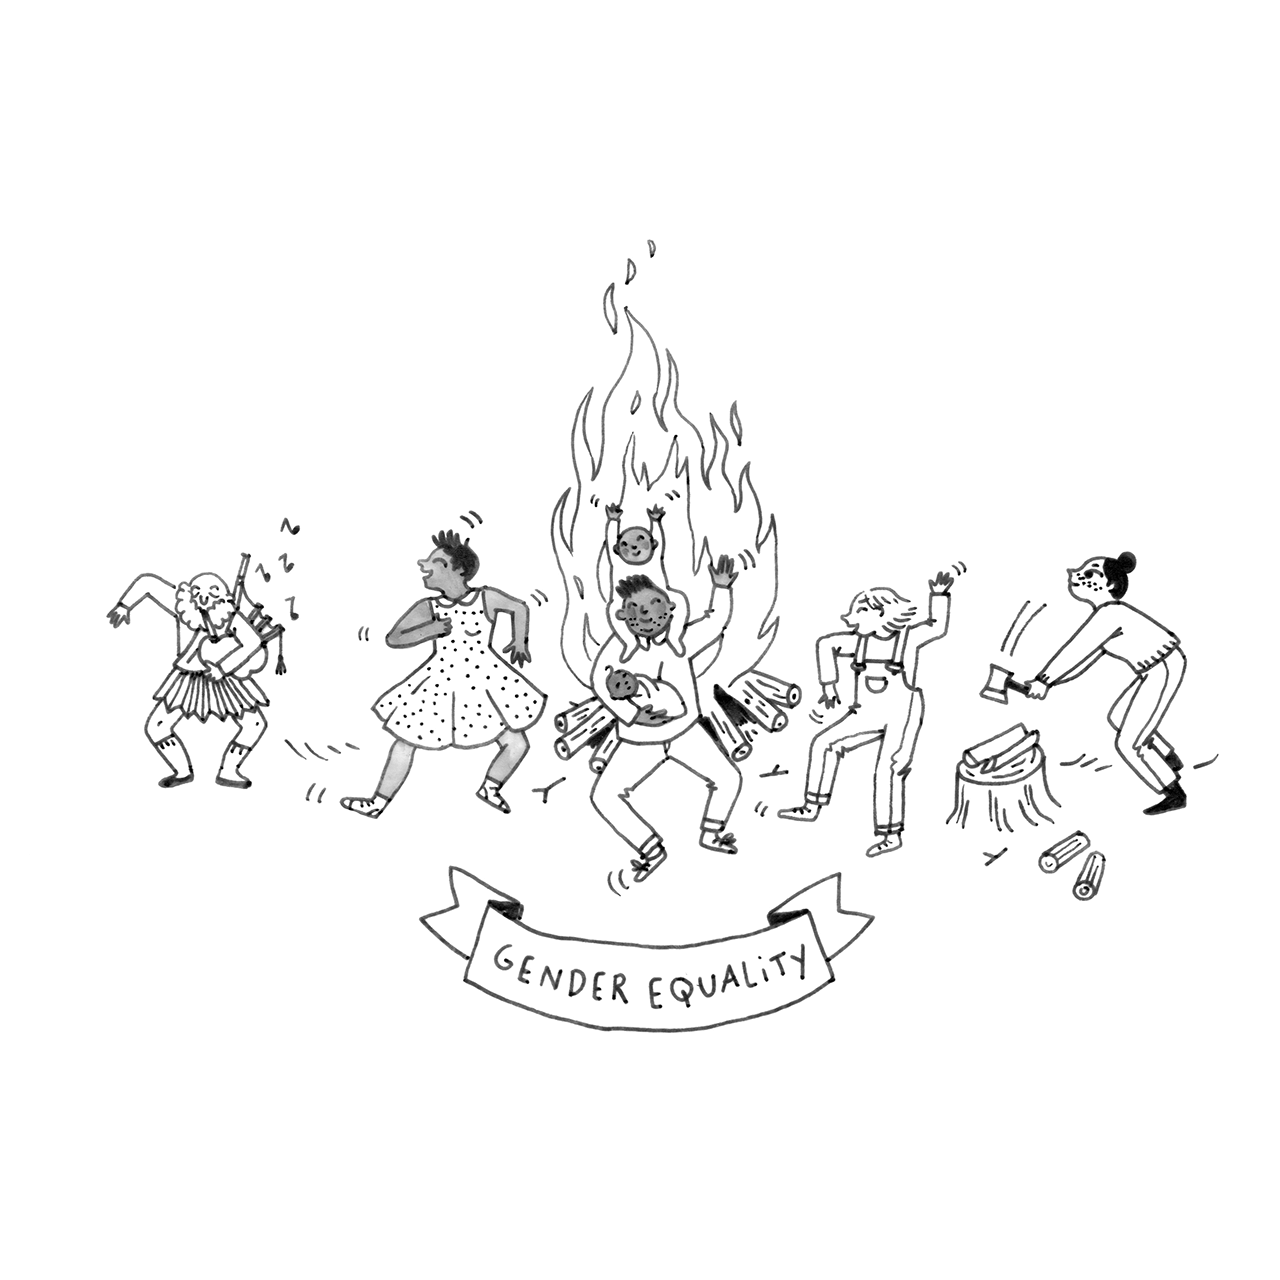 Illustration of a group of diverse people dancing around a campfire